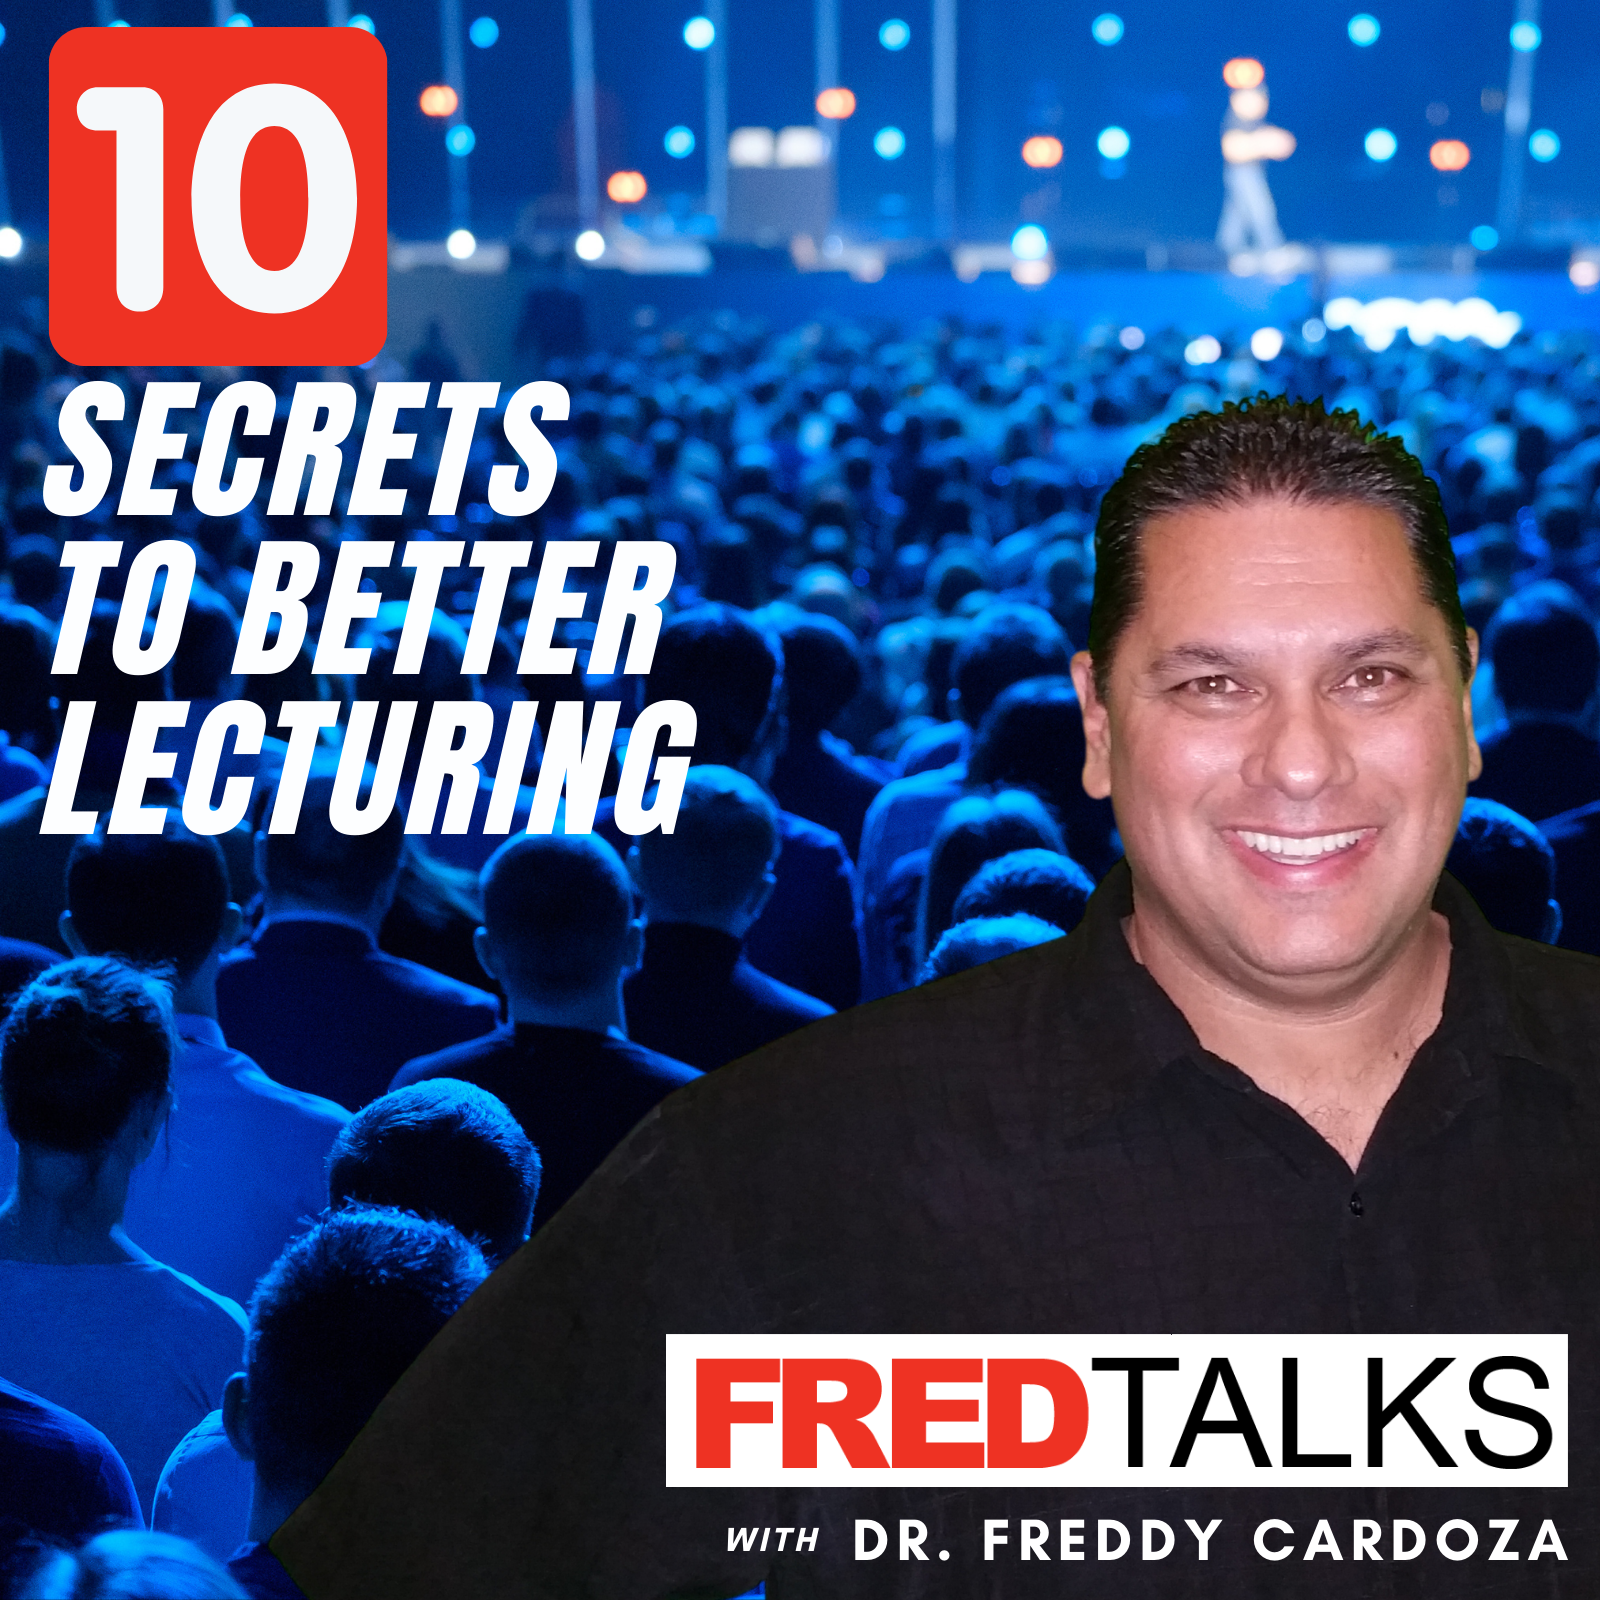 Cover - Ten Secrets to Better Lecturing